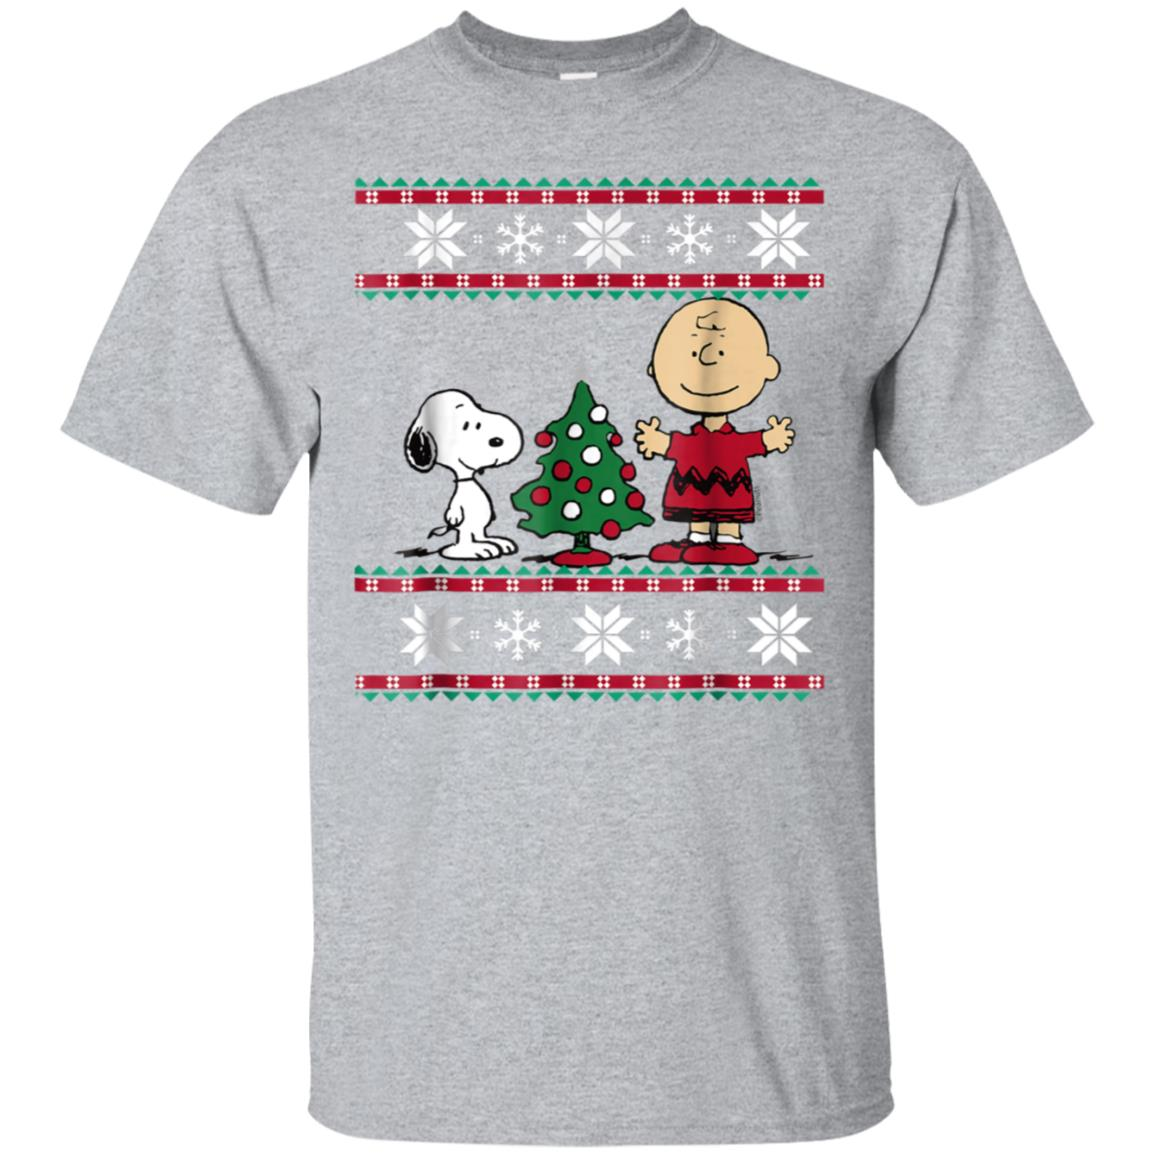 Peanuts Snoopy and Charlie Christmas T-shirt 99promocode